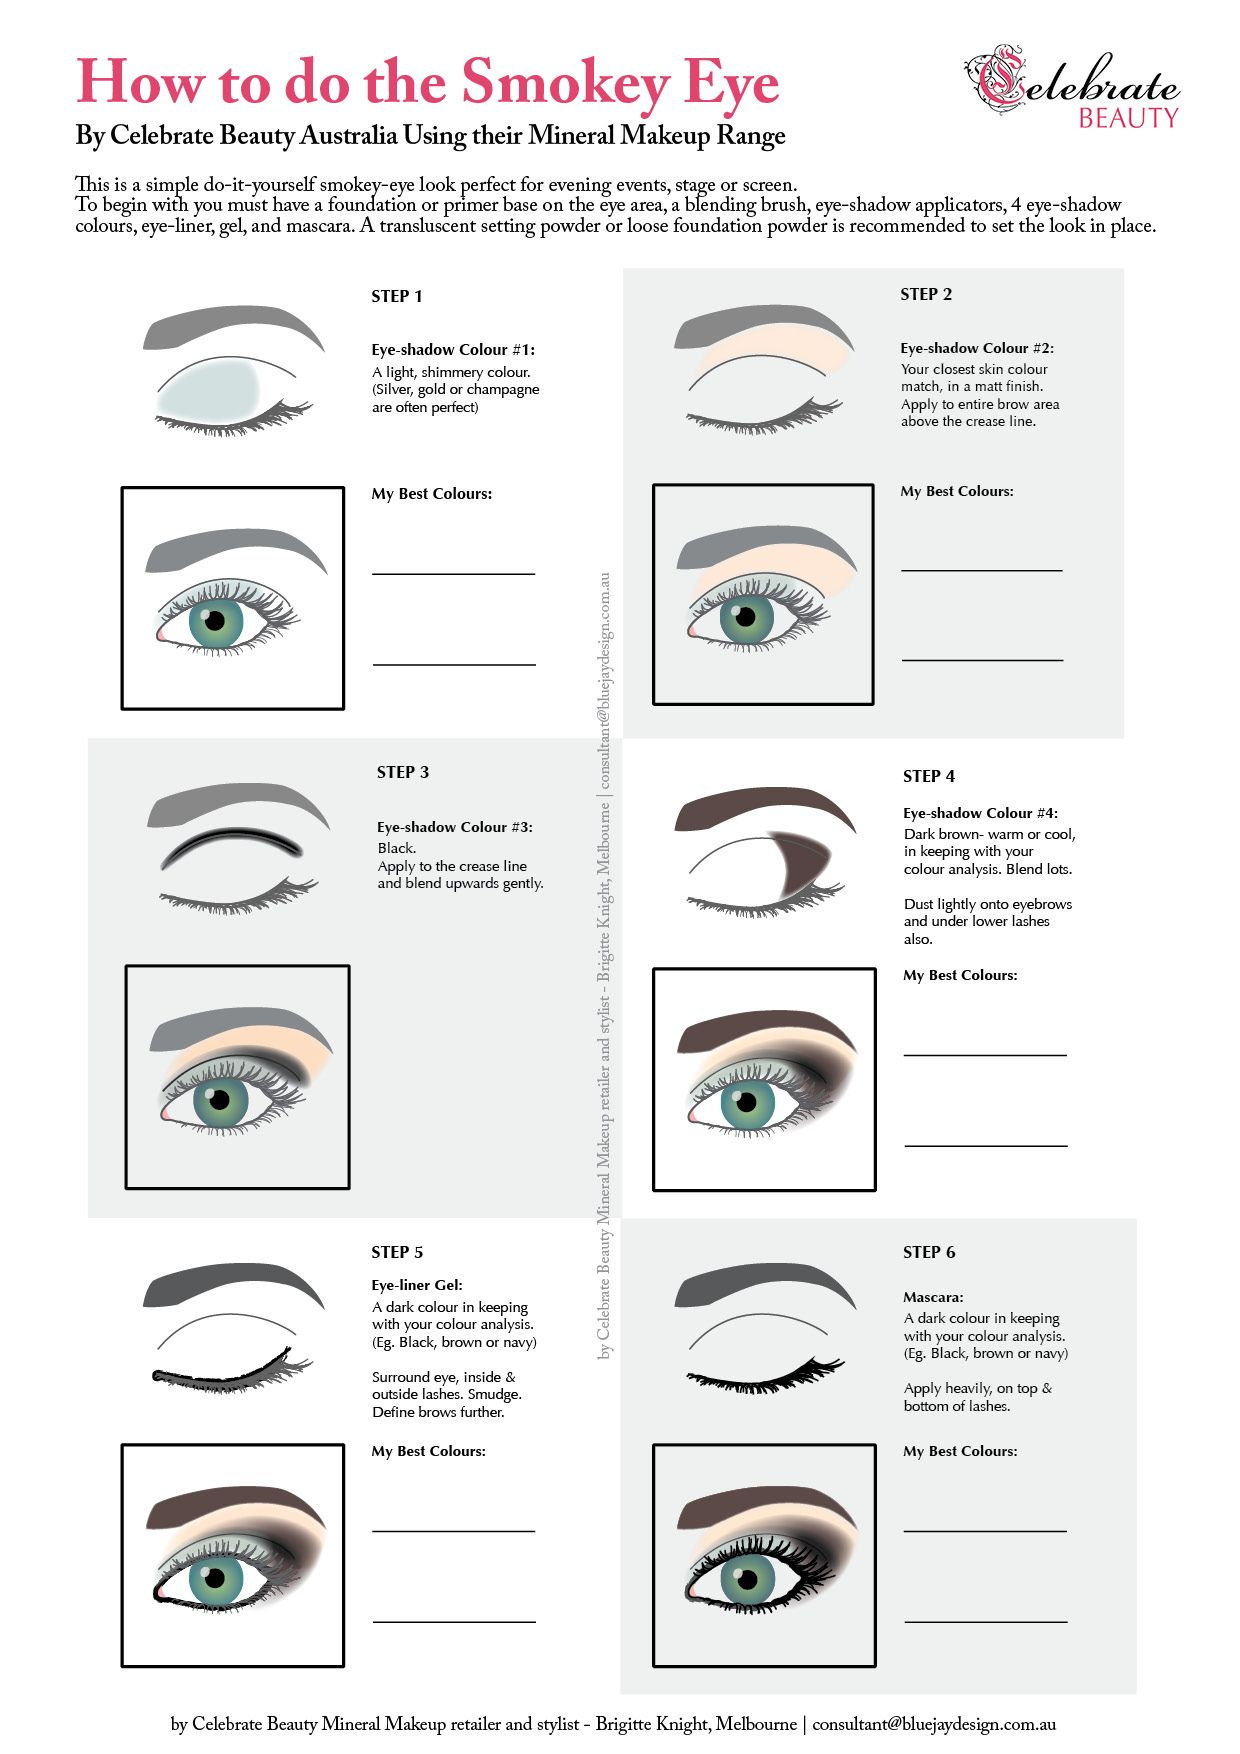 hight resolution of how to do the smokey eye diagram for makeup application visit my board for the upcoming course in melbourne smokeyeye makeuptutorial makeupdemo